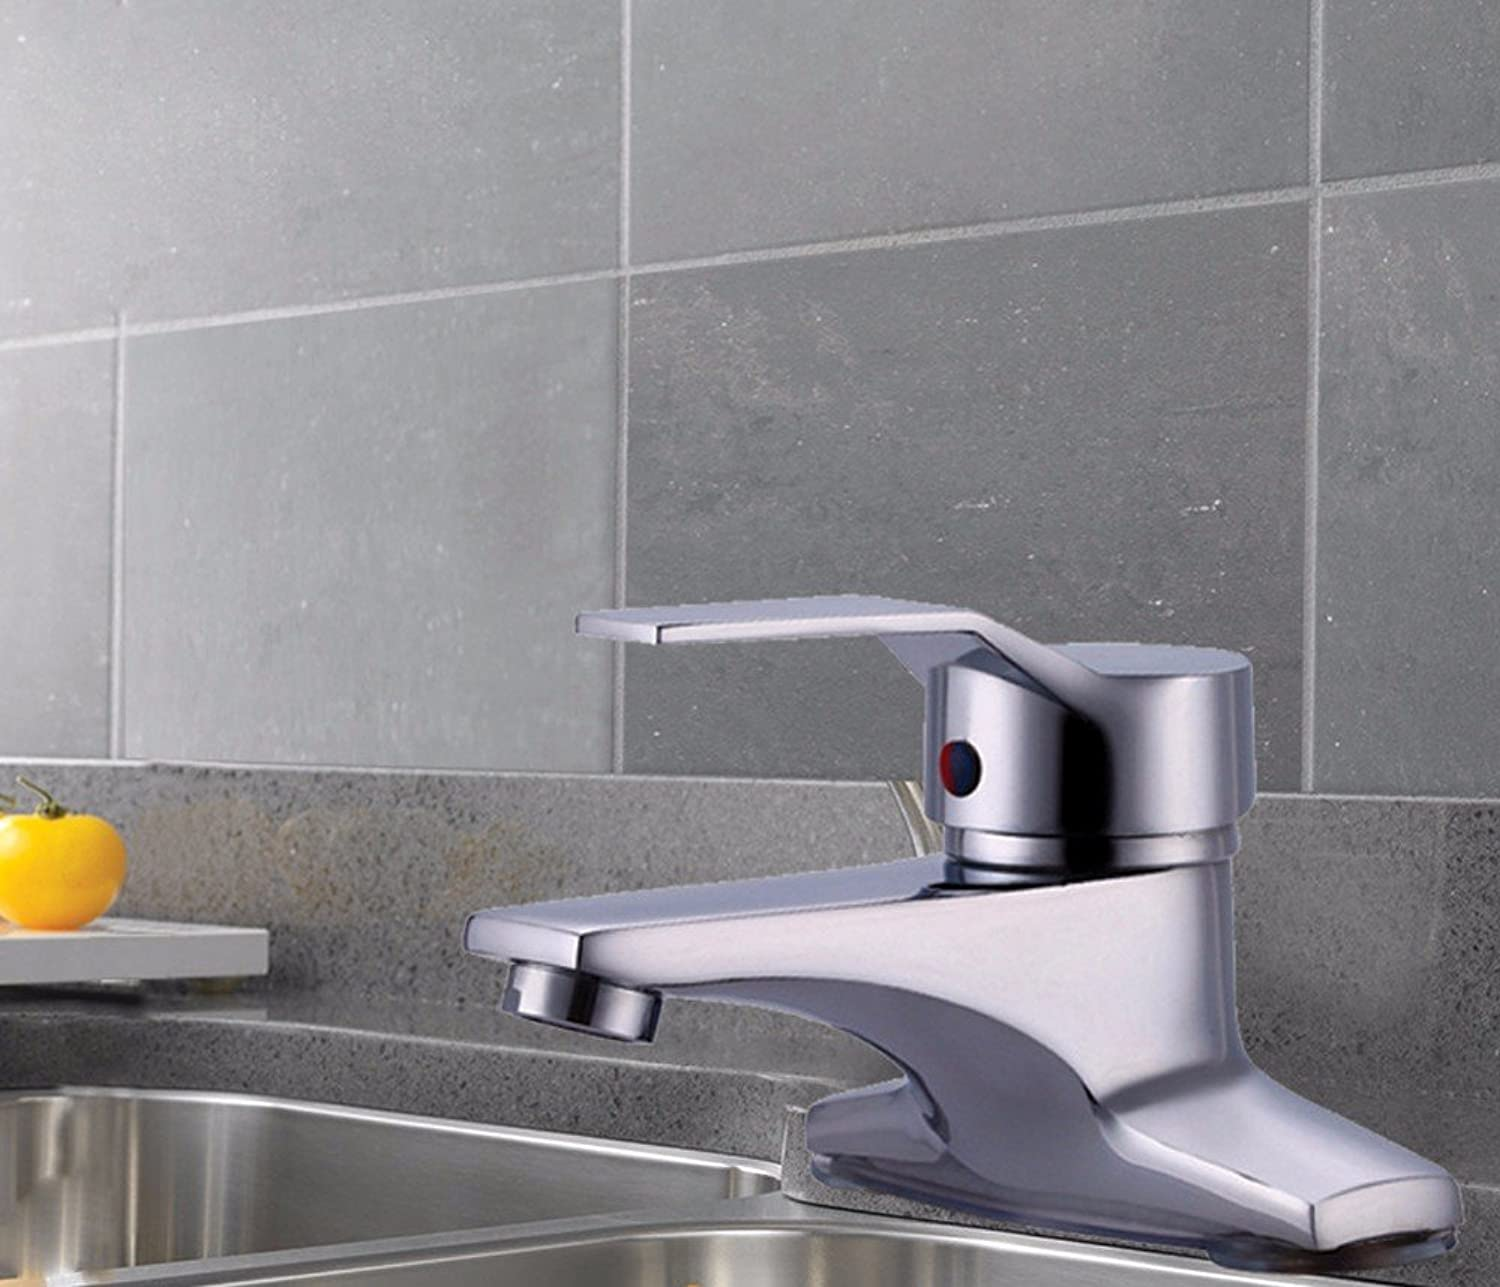 LHbox Basin Mixer Tap Bathroom Sink Faucet 2) Hot and cold water basin double-basin water mixing valve